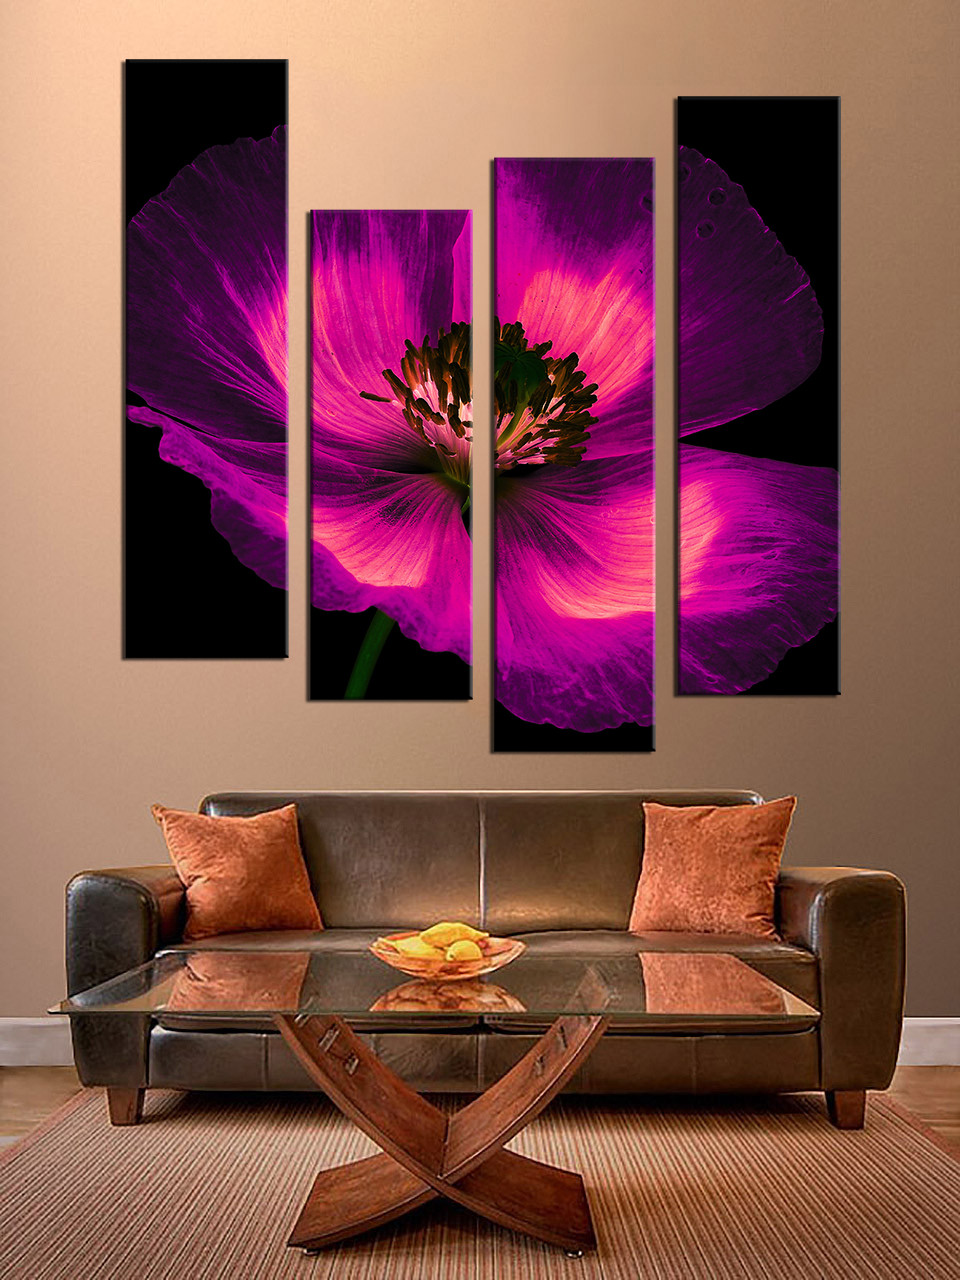 4 piece wall art purple flowers multi panel canvas floral canvas photography panoramic artwork flowers decor floral artwork